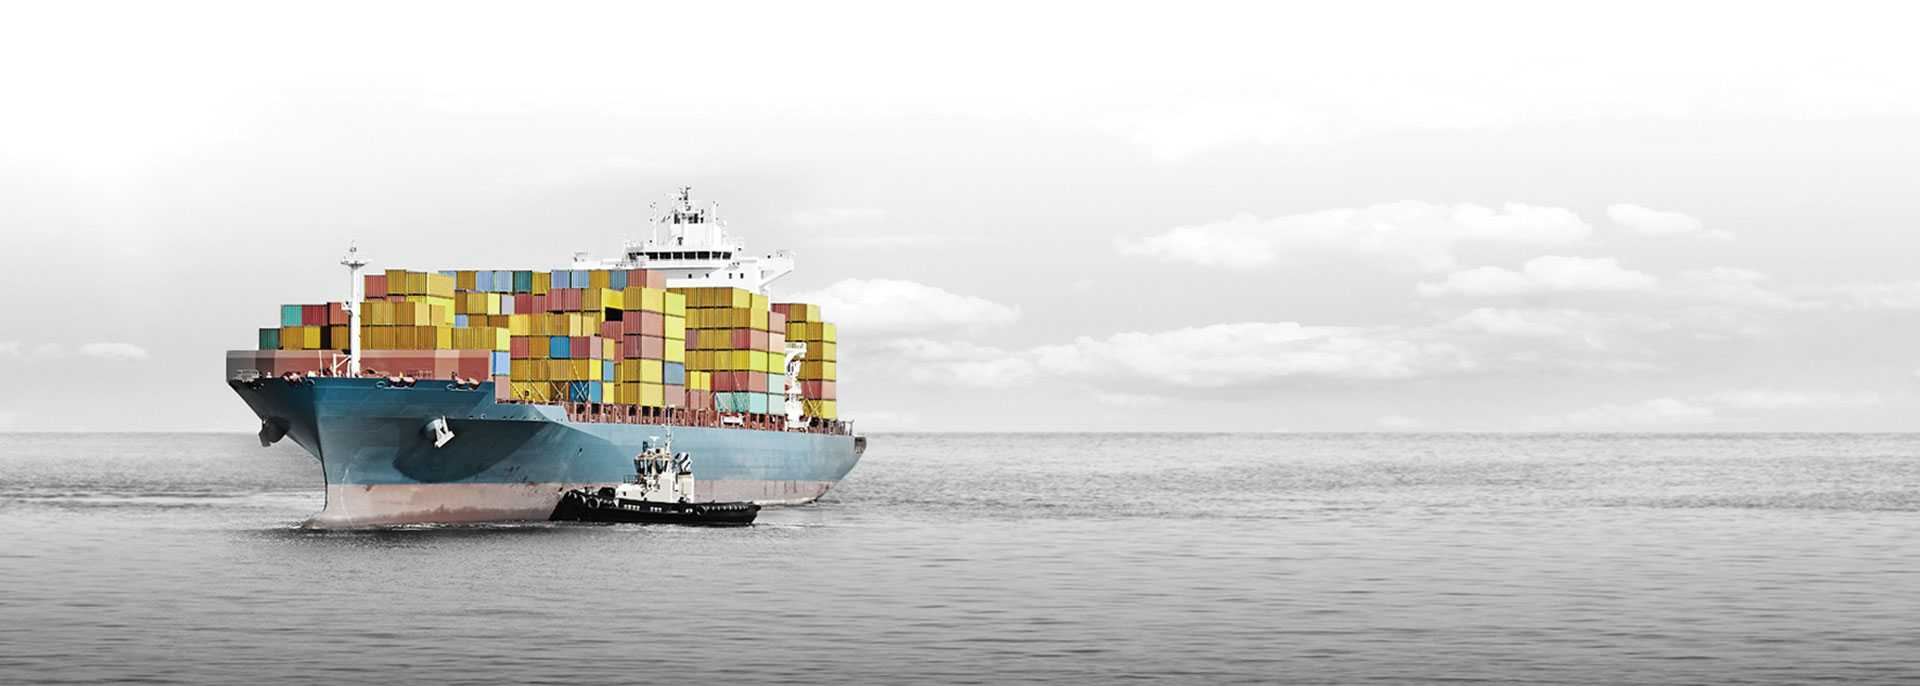 Large shipping boat on the open ocean, the boat and shipping containers are in color and the rest in black and white